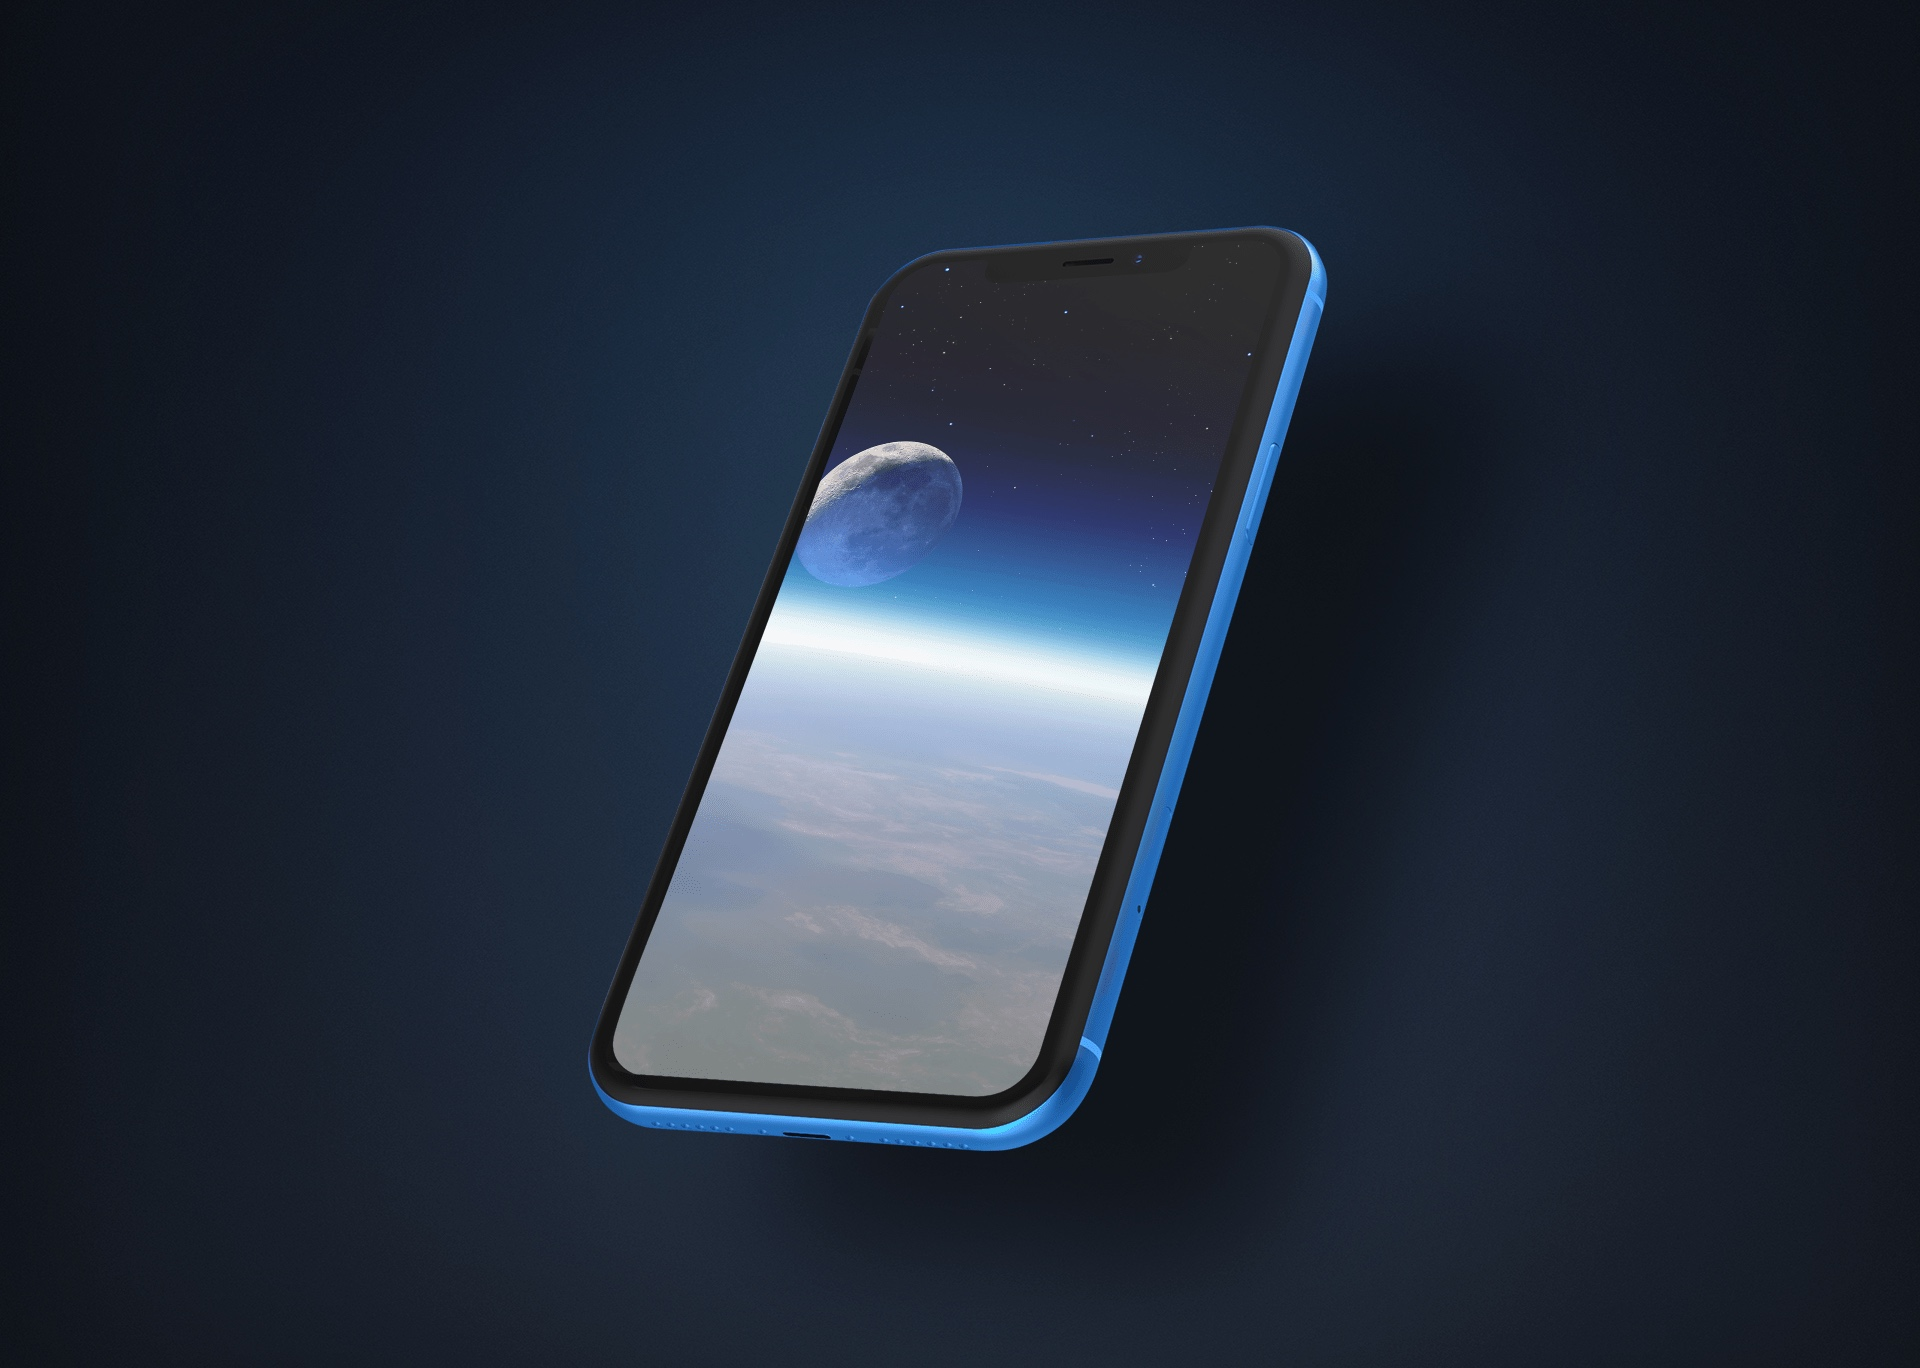 Wallpapers of the week: Earth's Moon